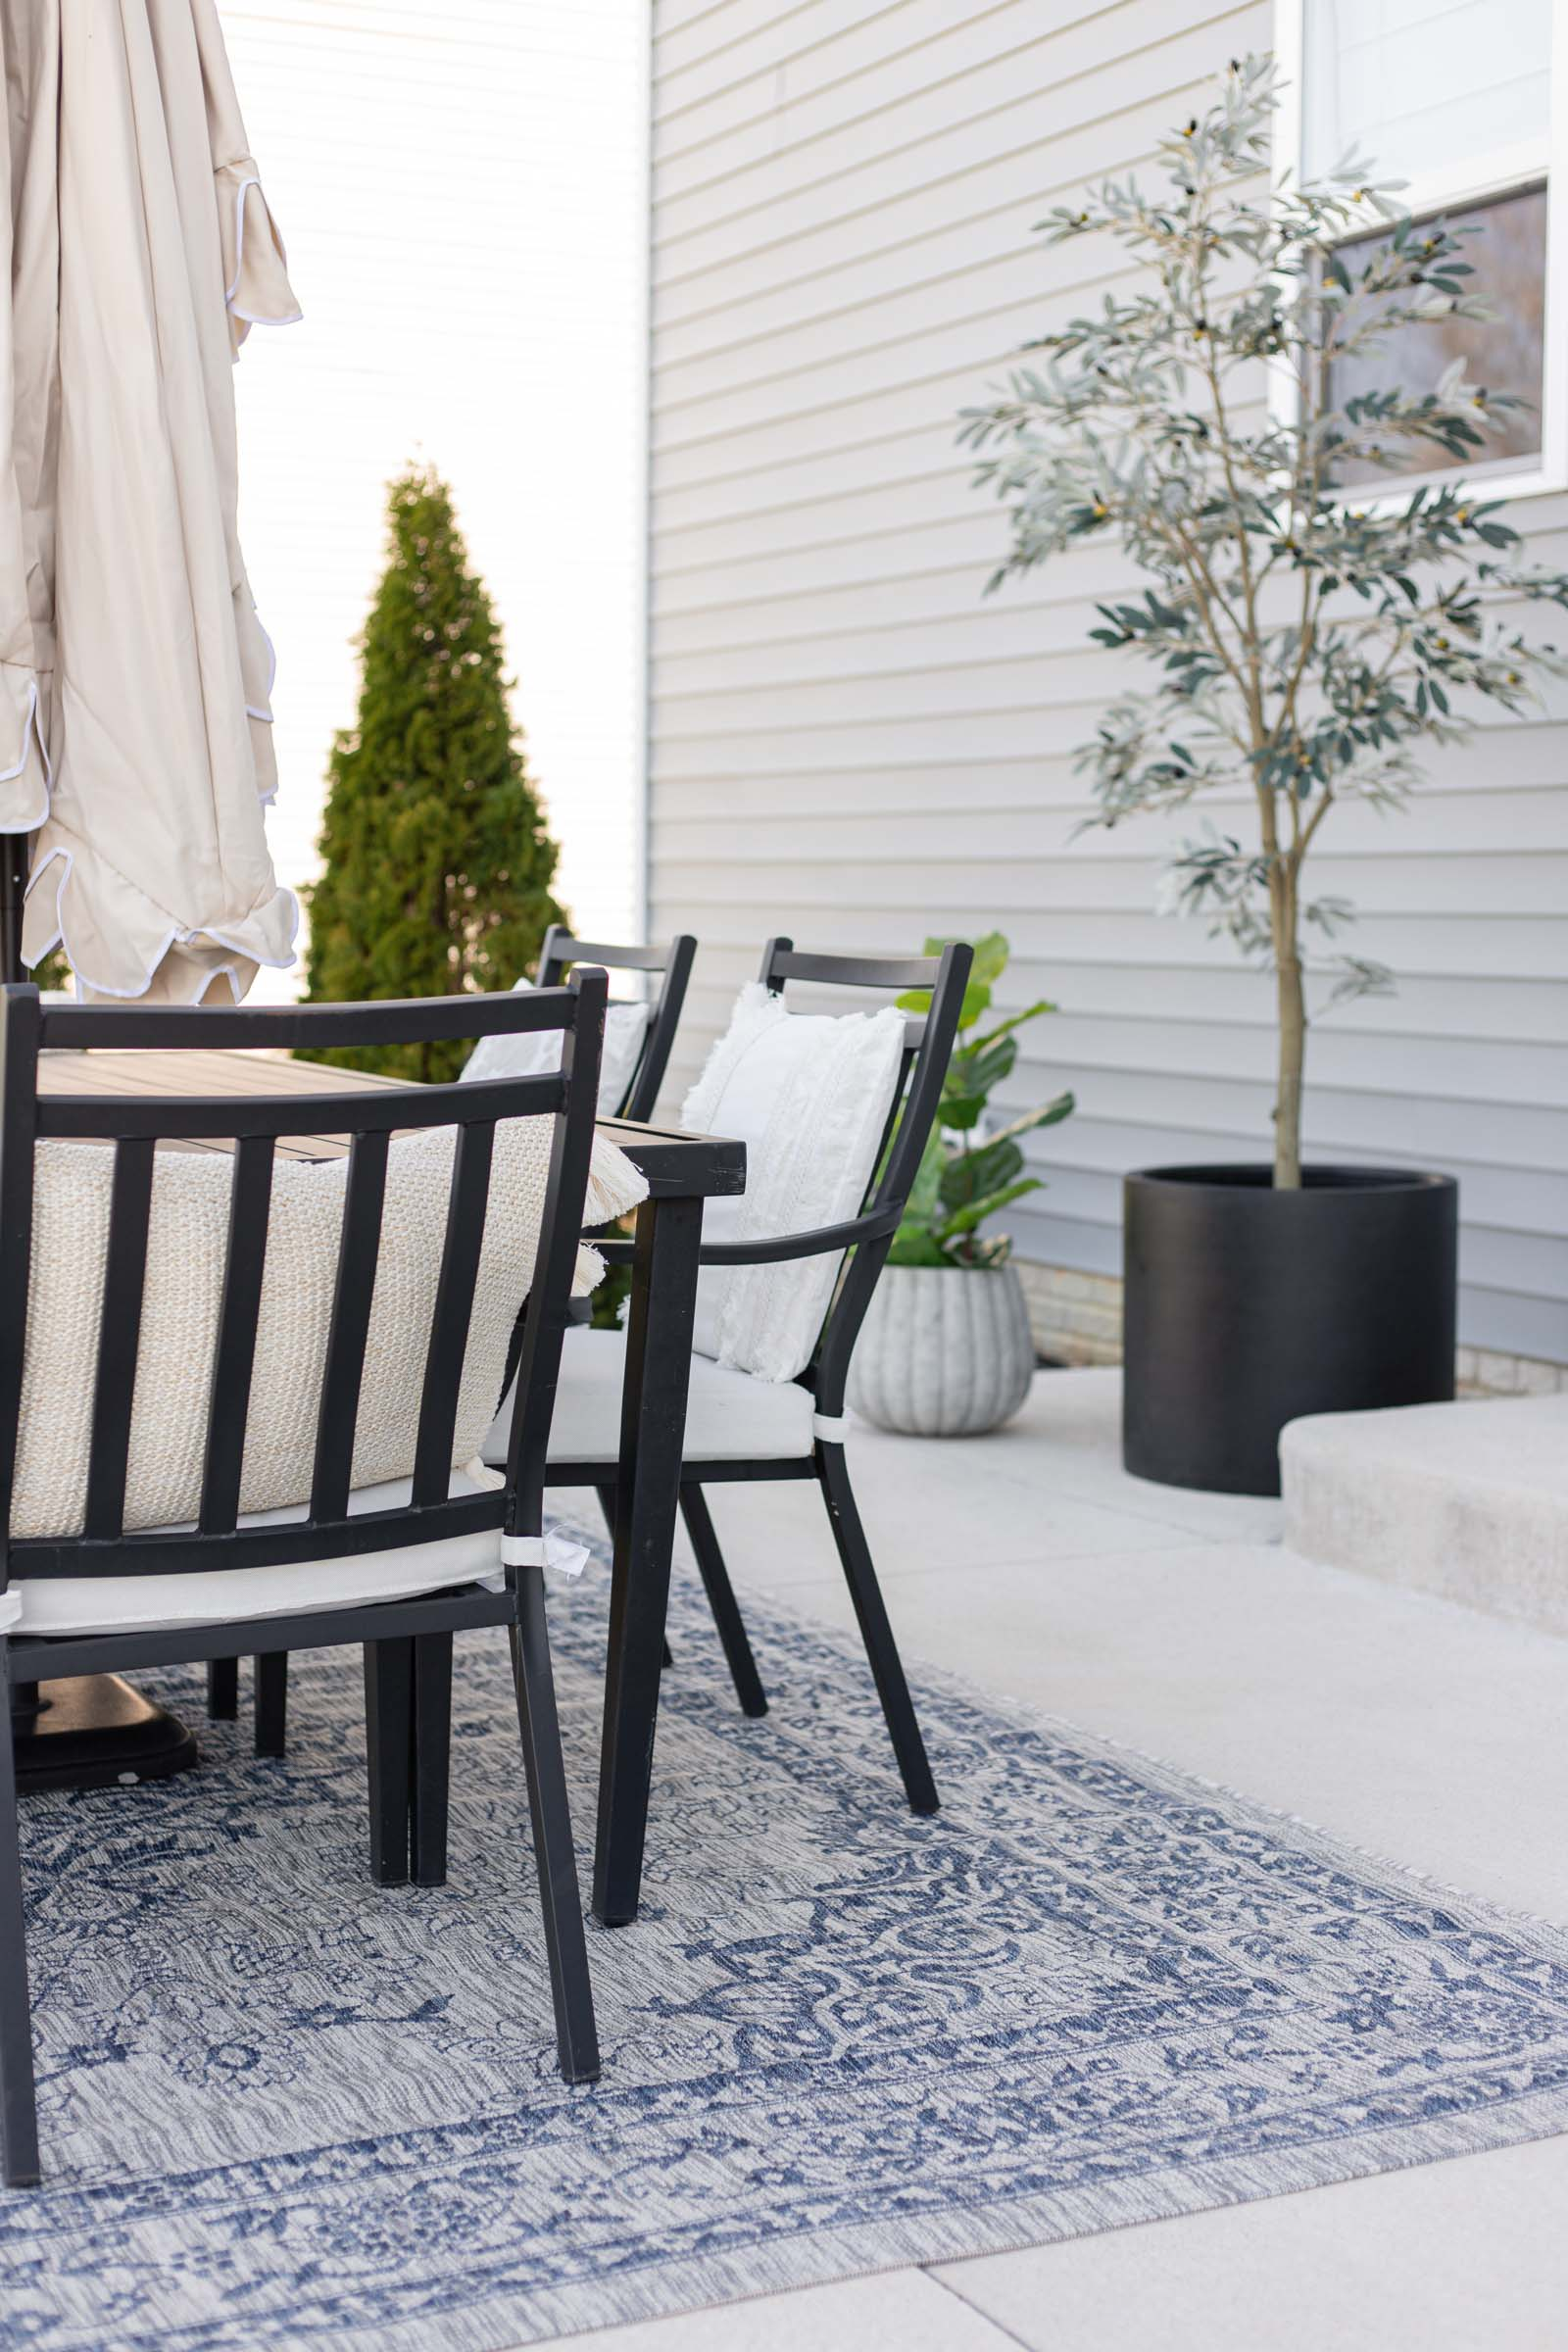 patio table with pillows and two planters with trees